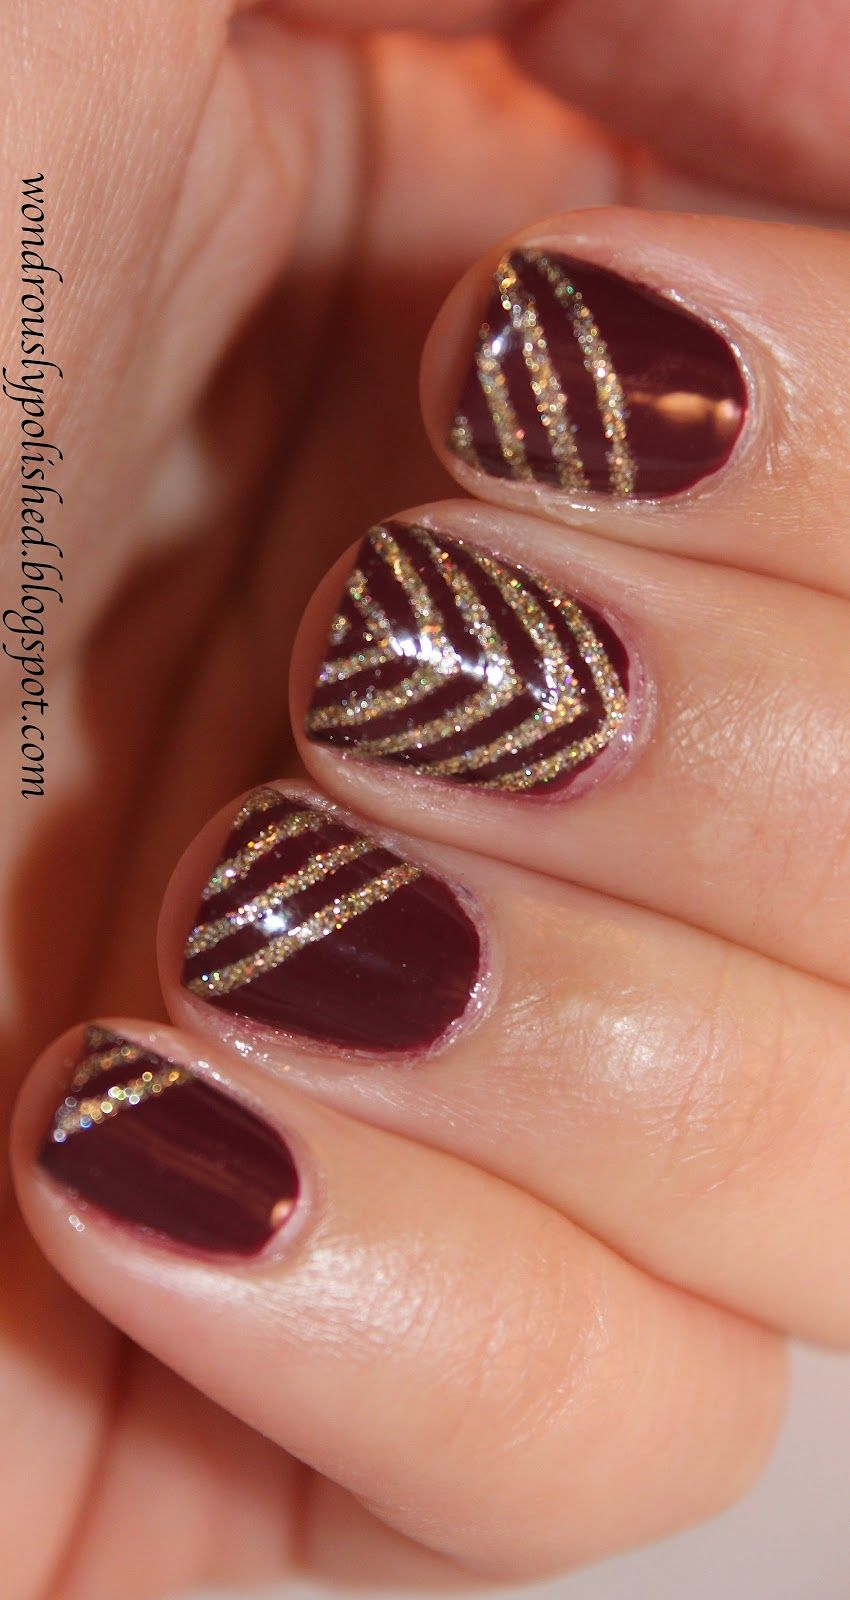 New Nail Polish Trends: New Year's Nails 2016. Merlot Gel Manicure. Gold Sparkly